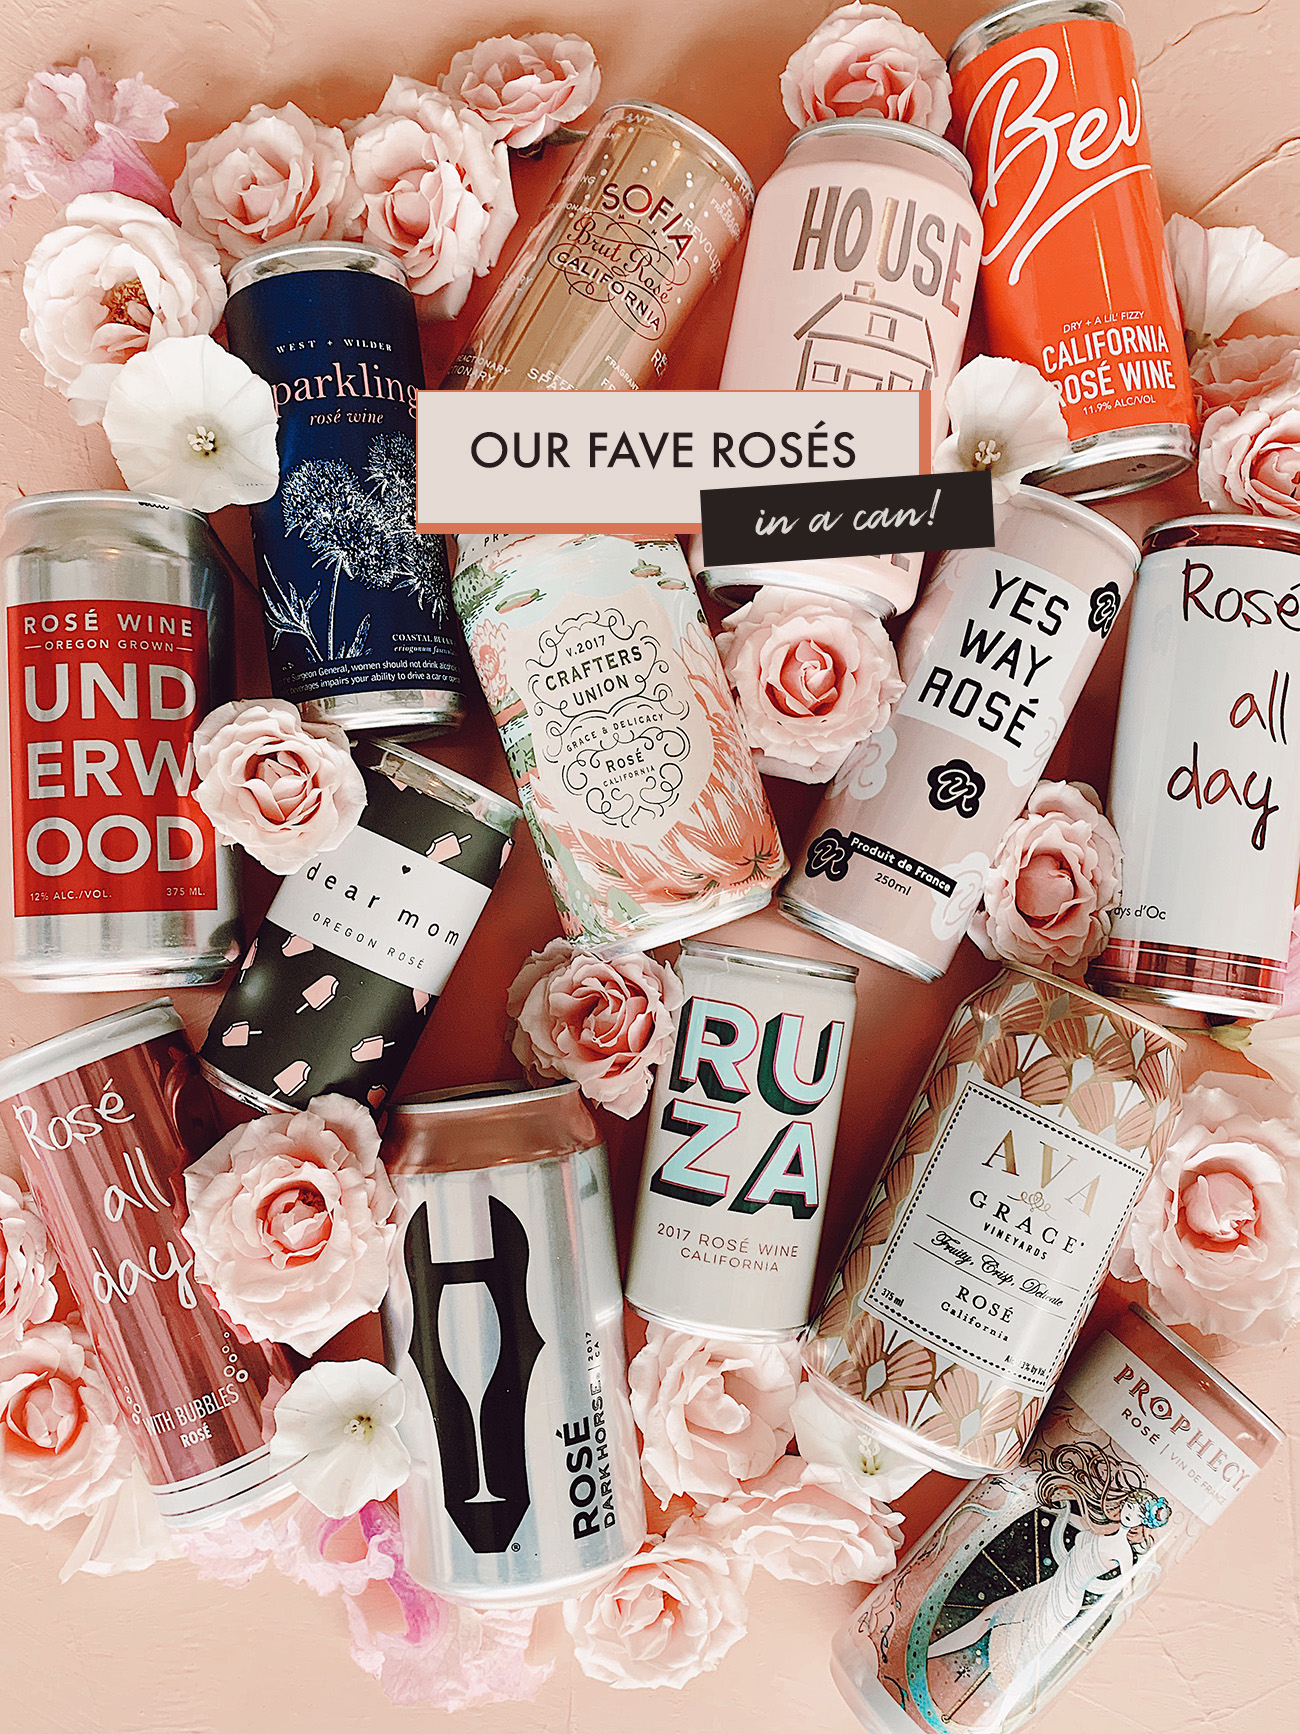 The Best Rosés in a Can!